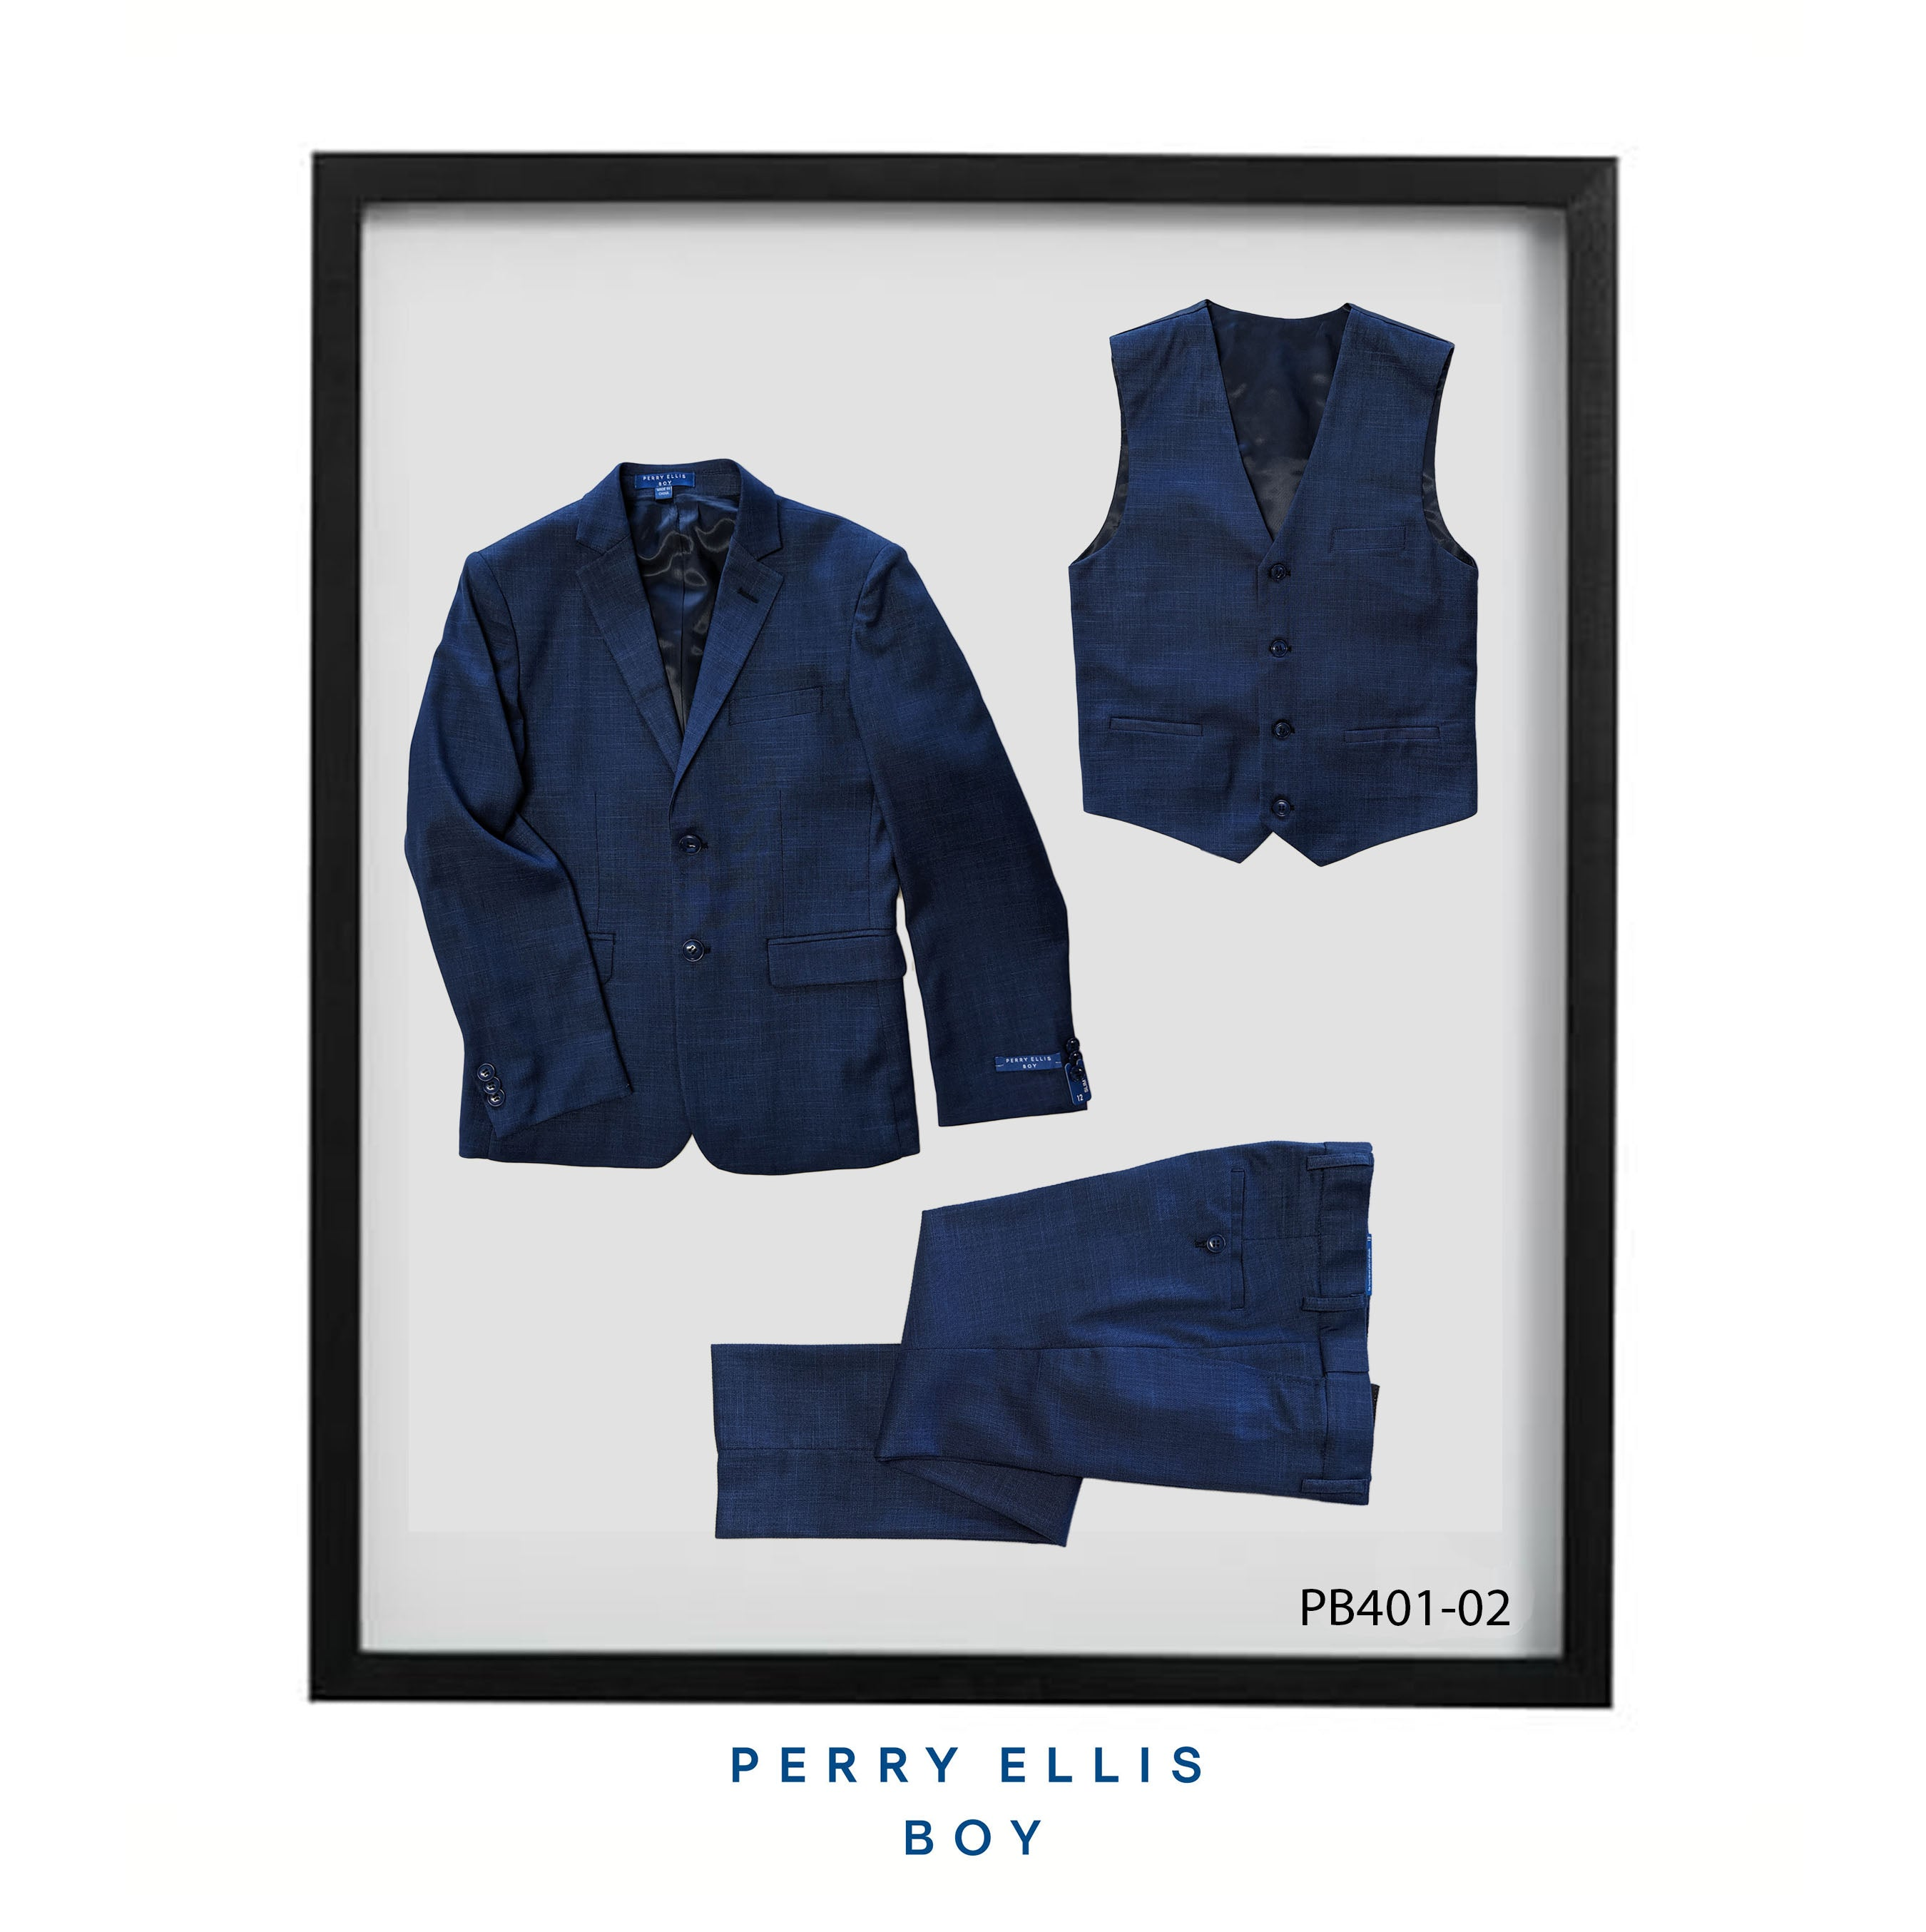 Blue 3 Piece Perry Ellis Textured Suits For Boys PB401-02